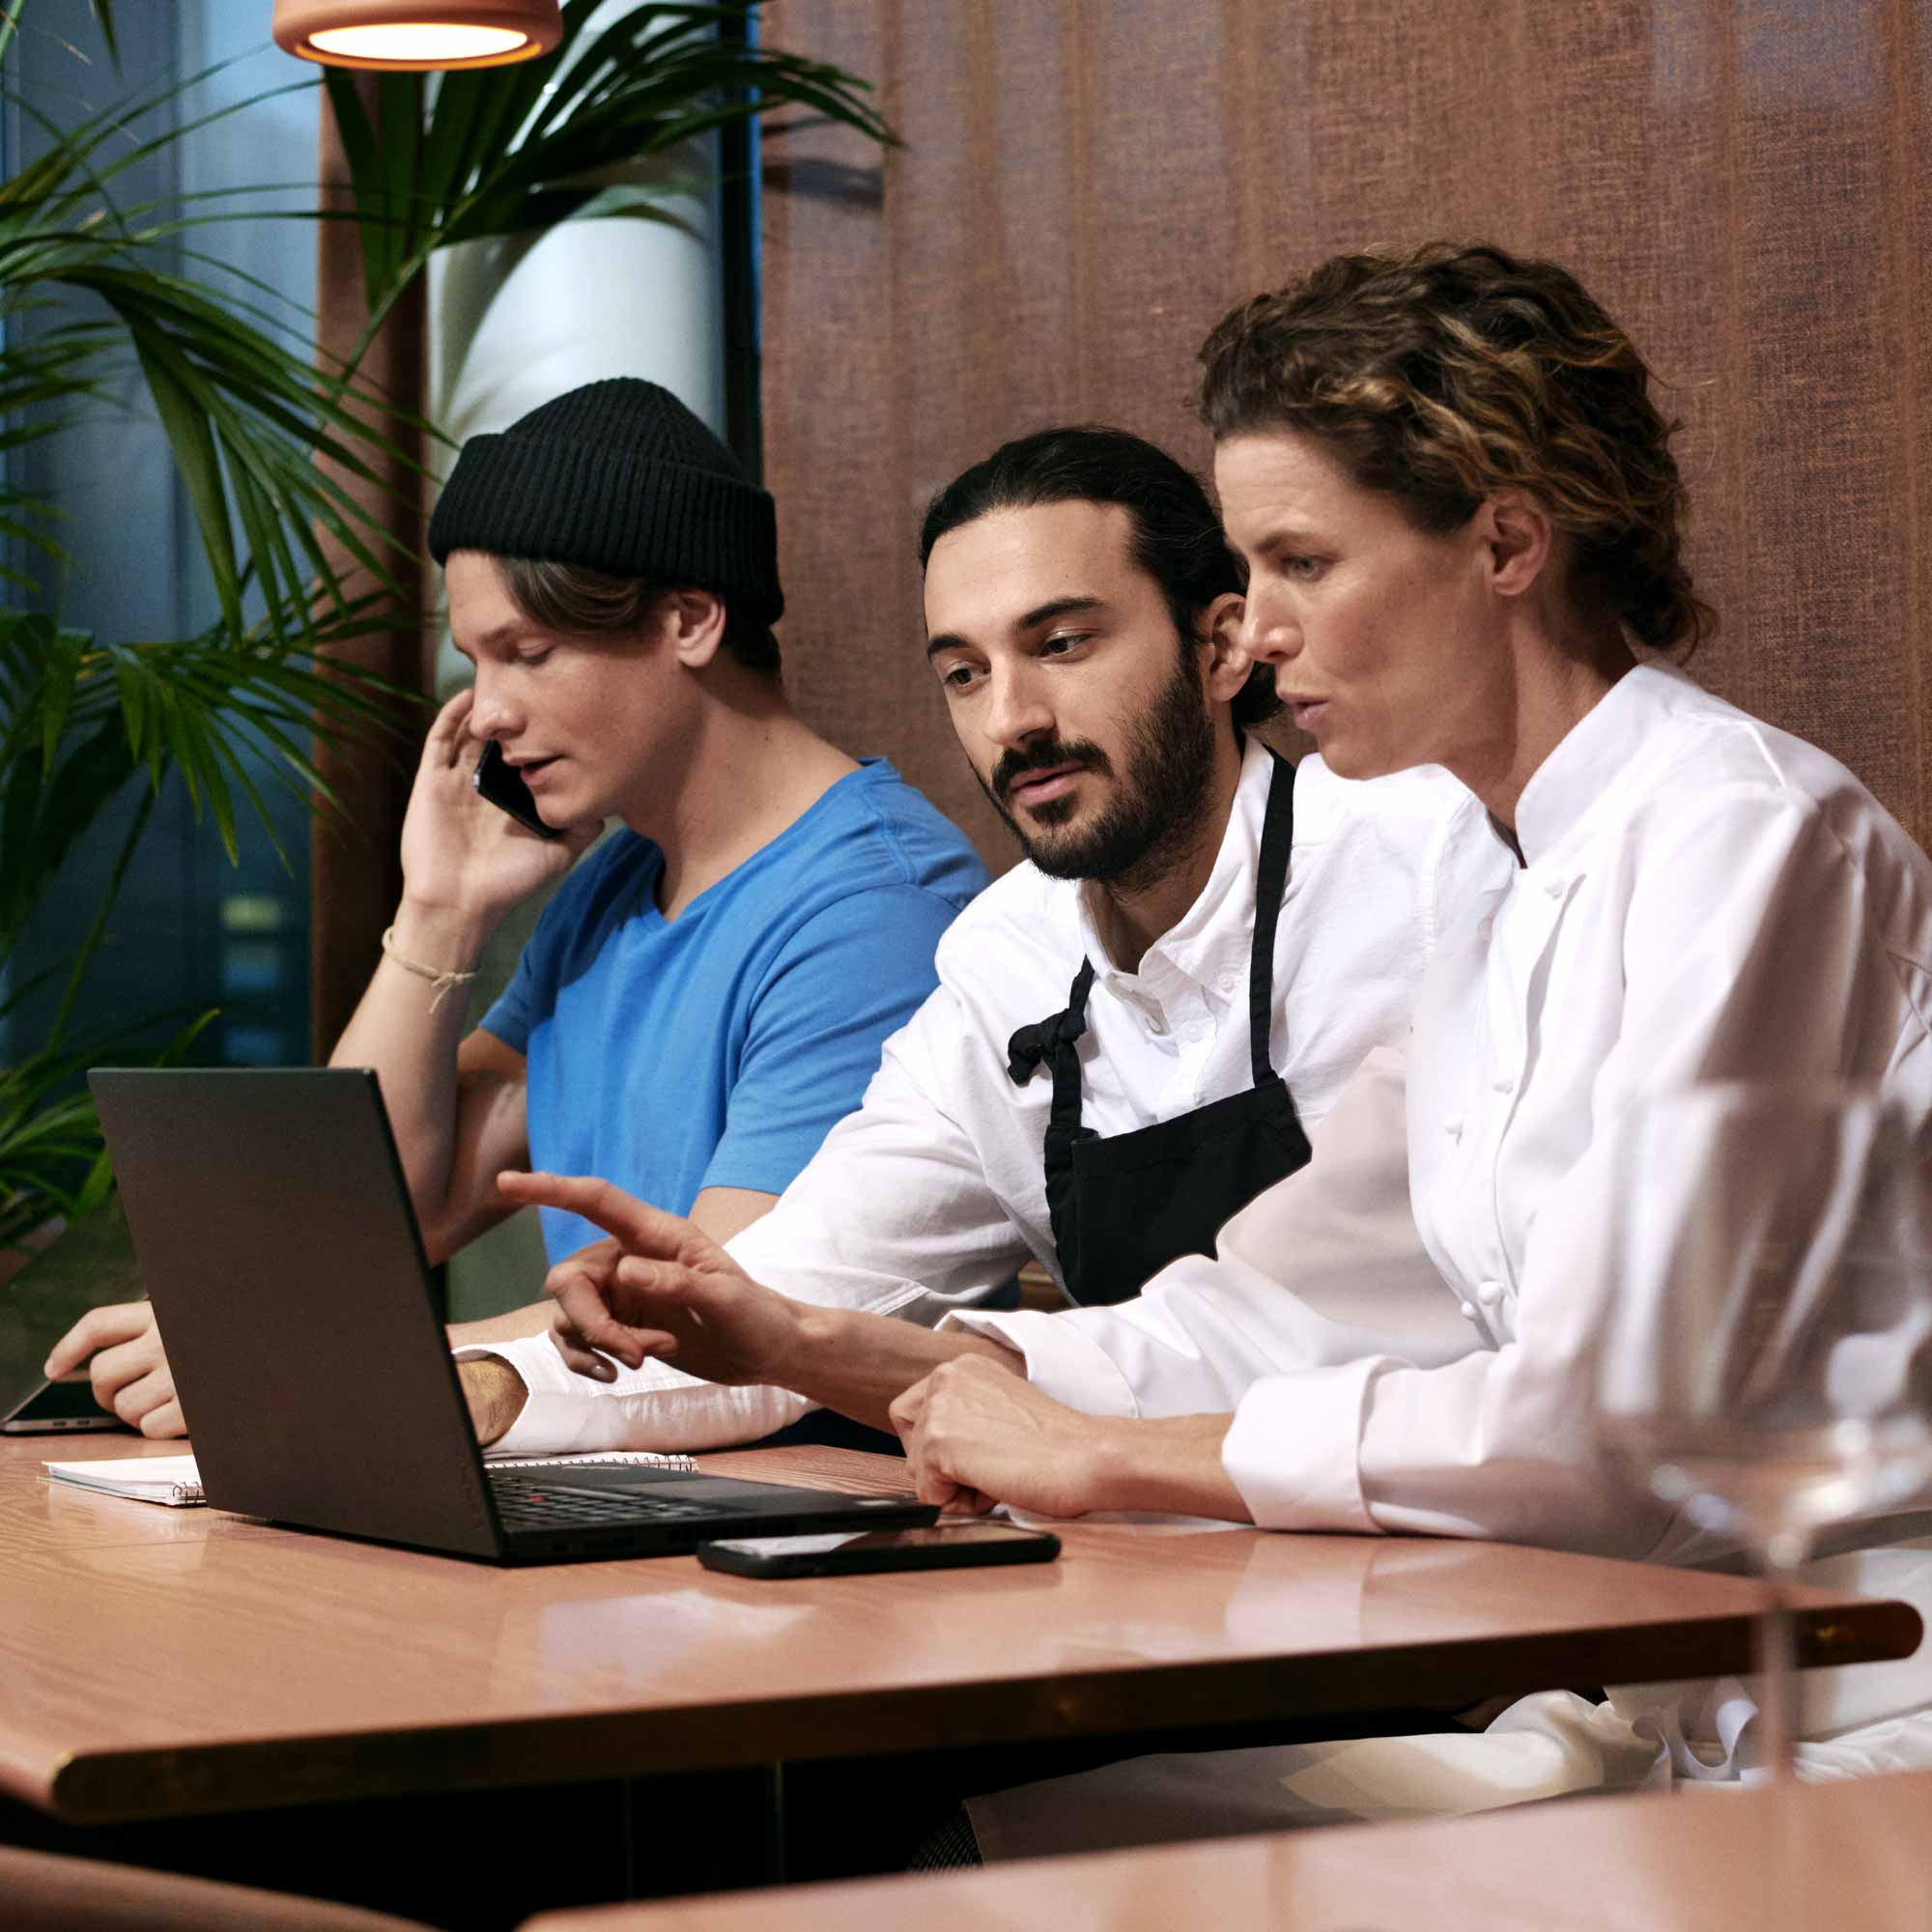 Restaurant staff in meeting